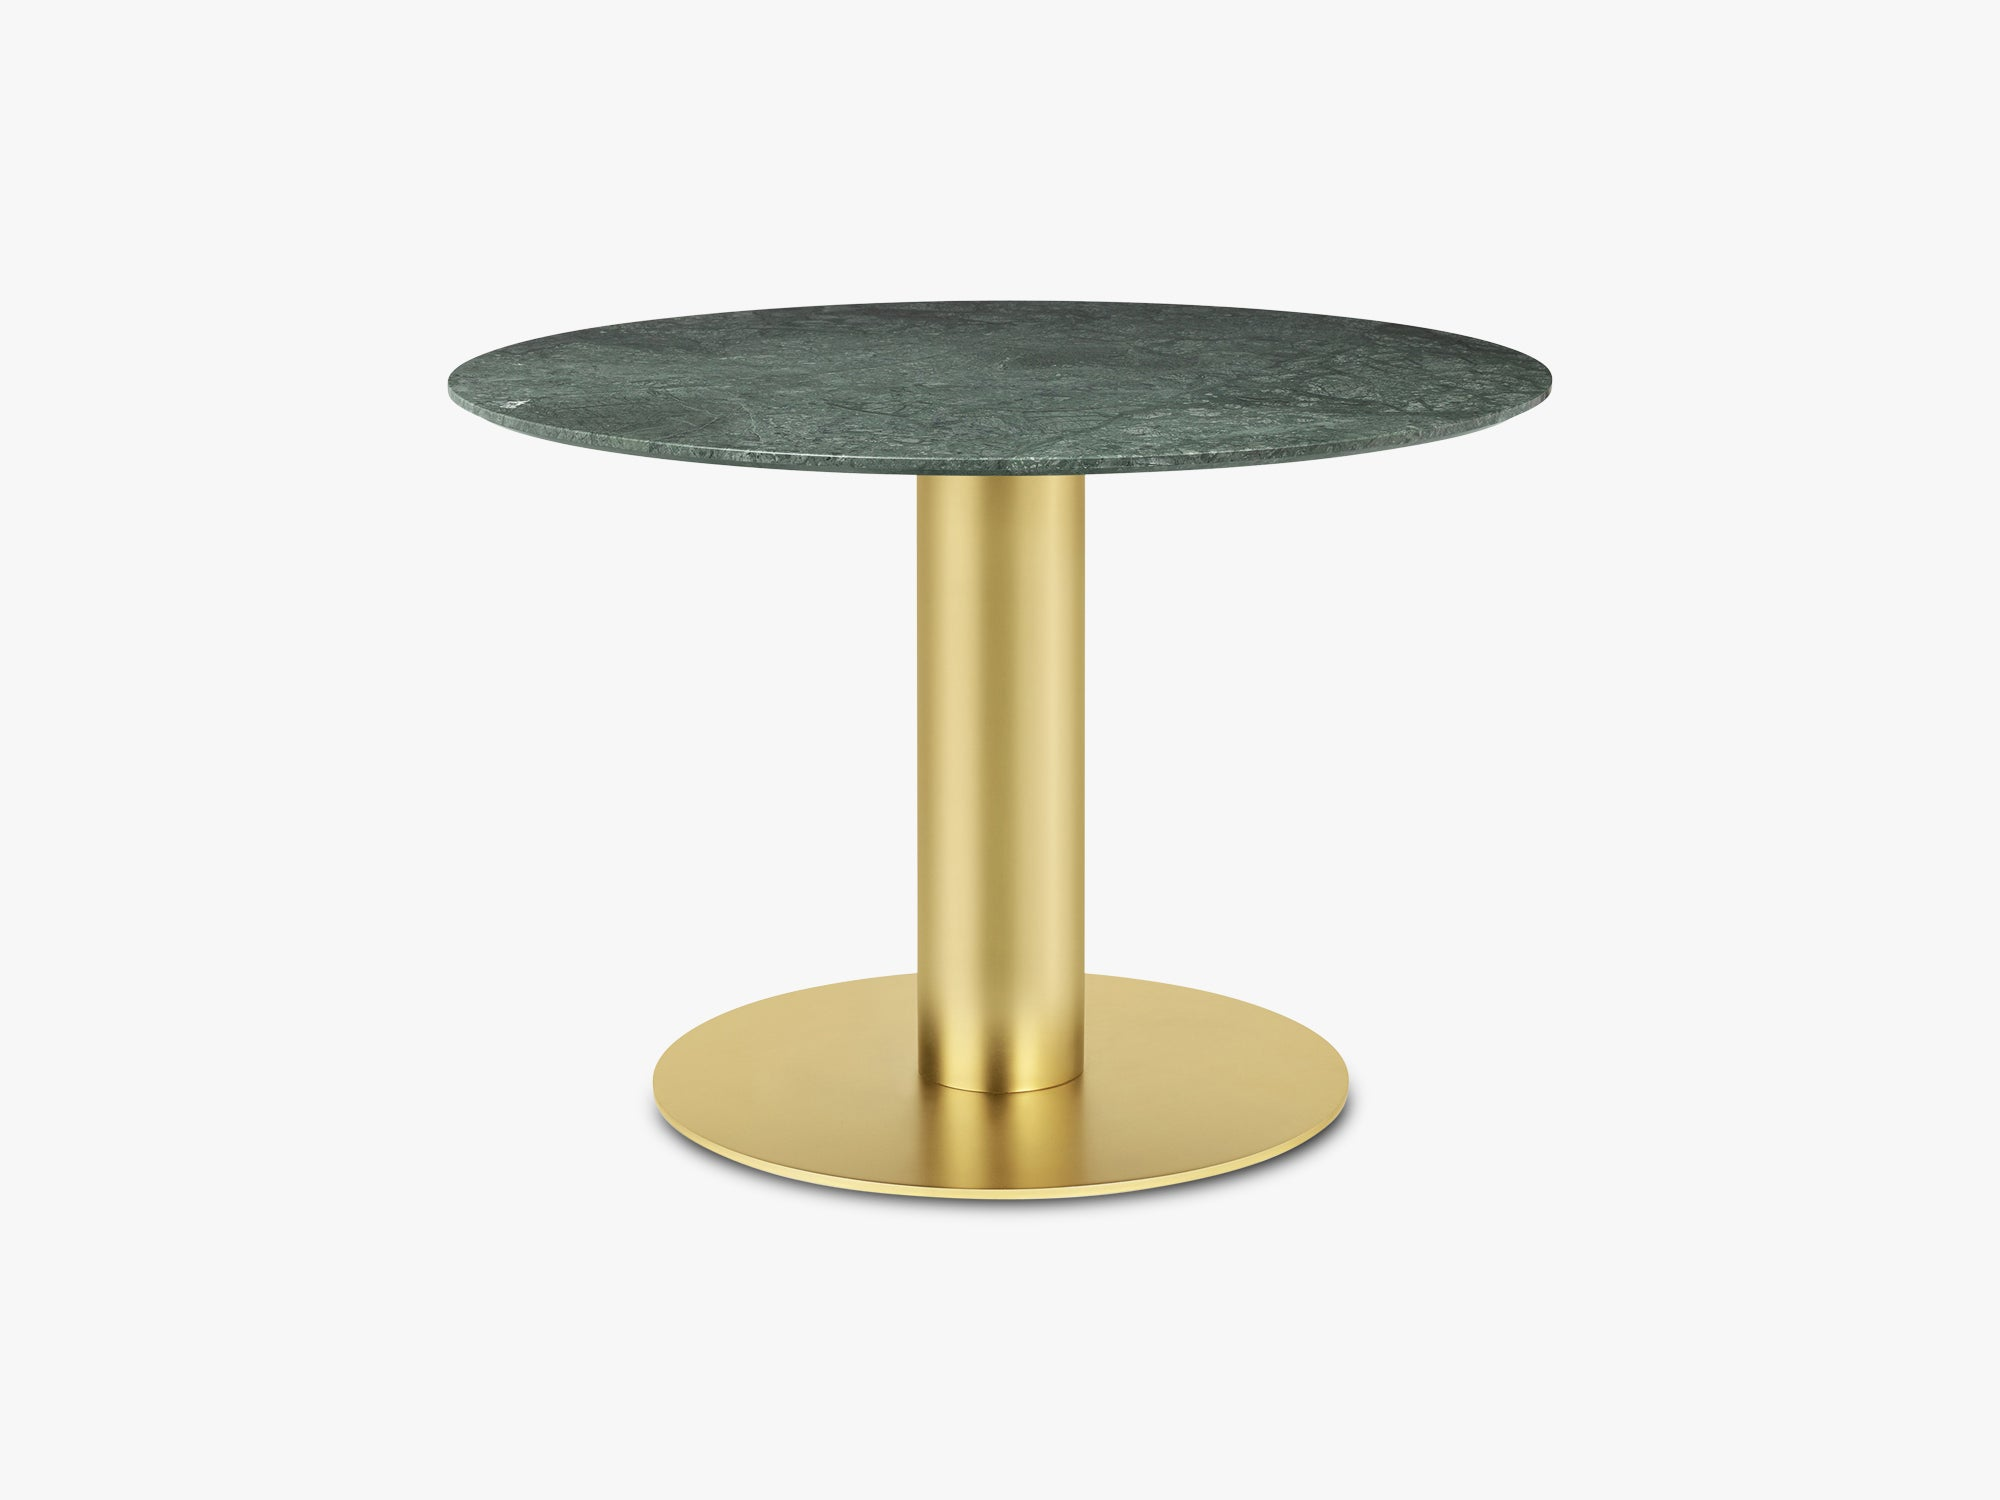 GUBI 2.0 Dining Table - Round - Ø110 - Brass base, Marble Green top fra GUBI